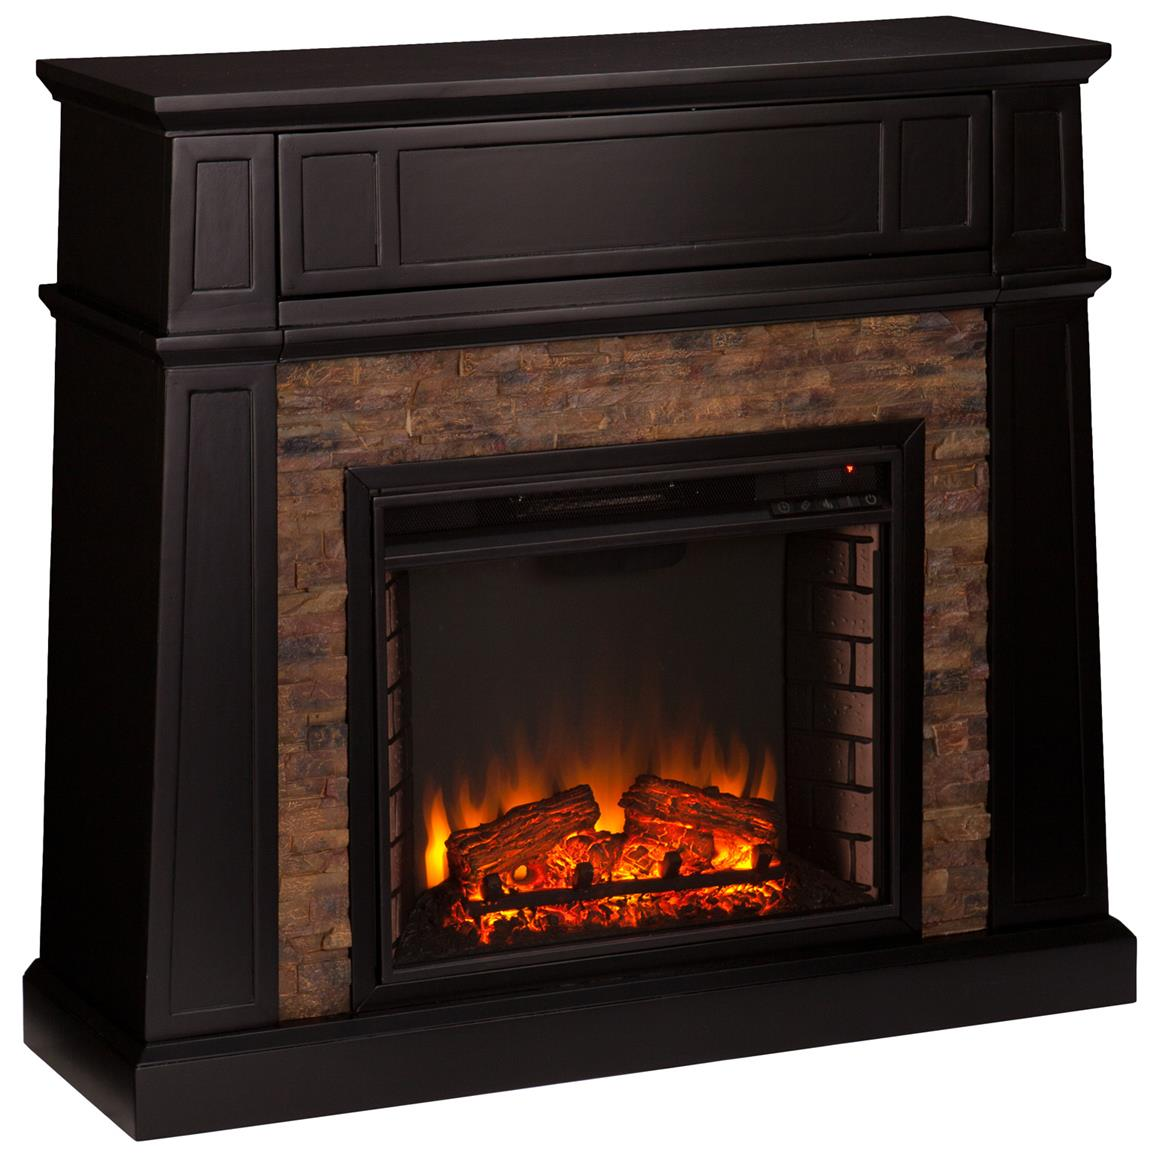 Southern Enterprises Crestwick Faux Stone Electric Media Fireplace Black 671468 Fireplaces